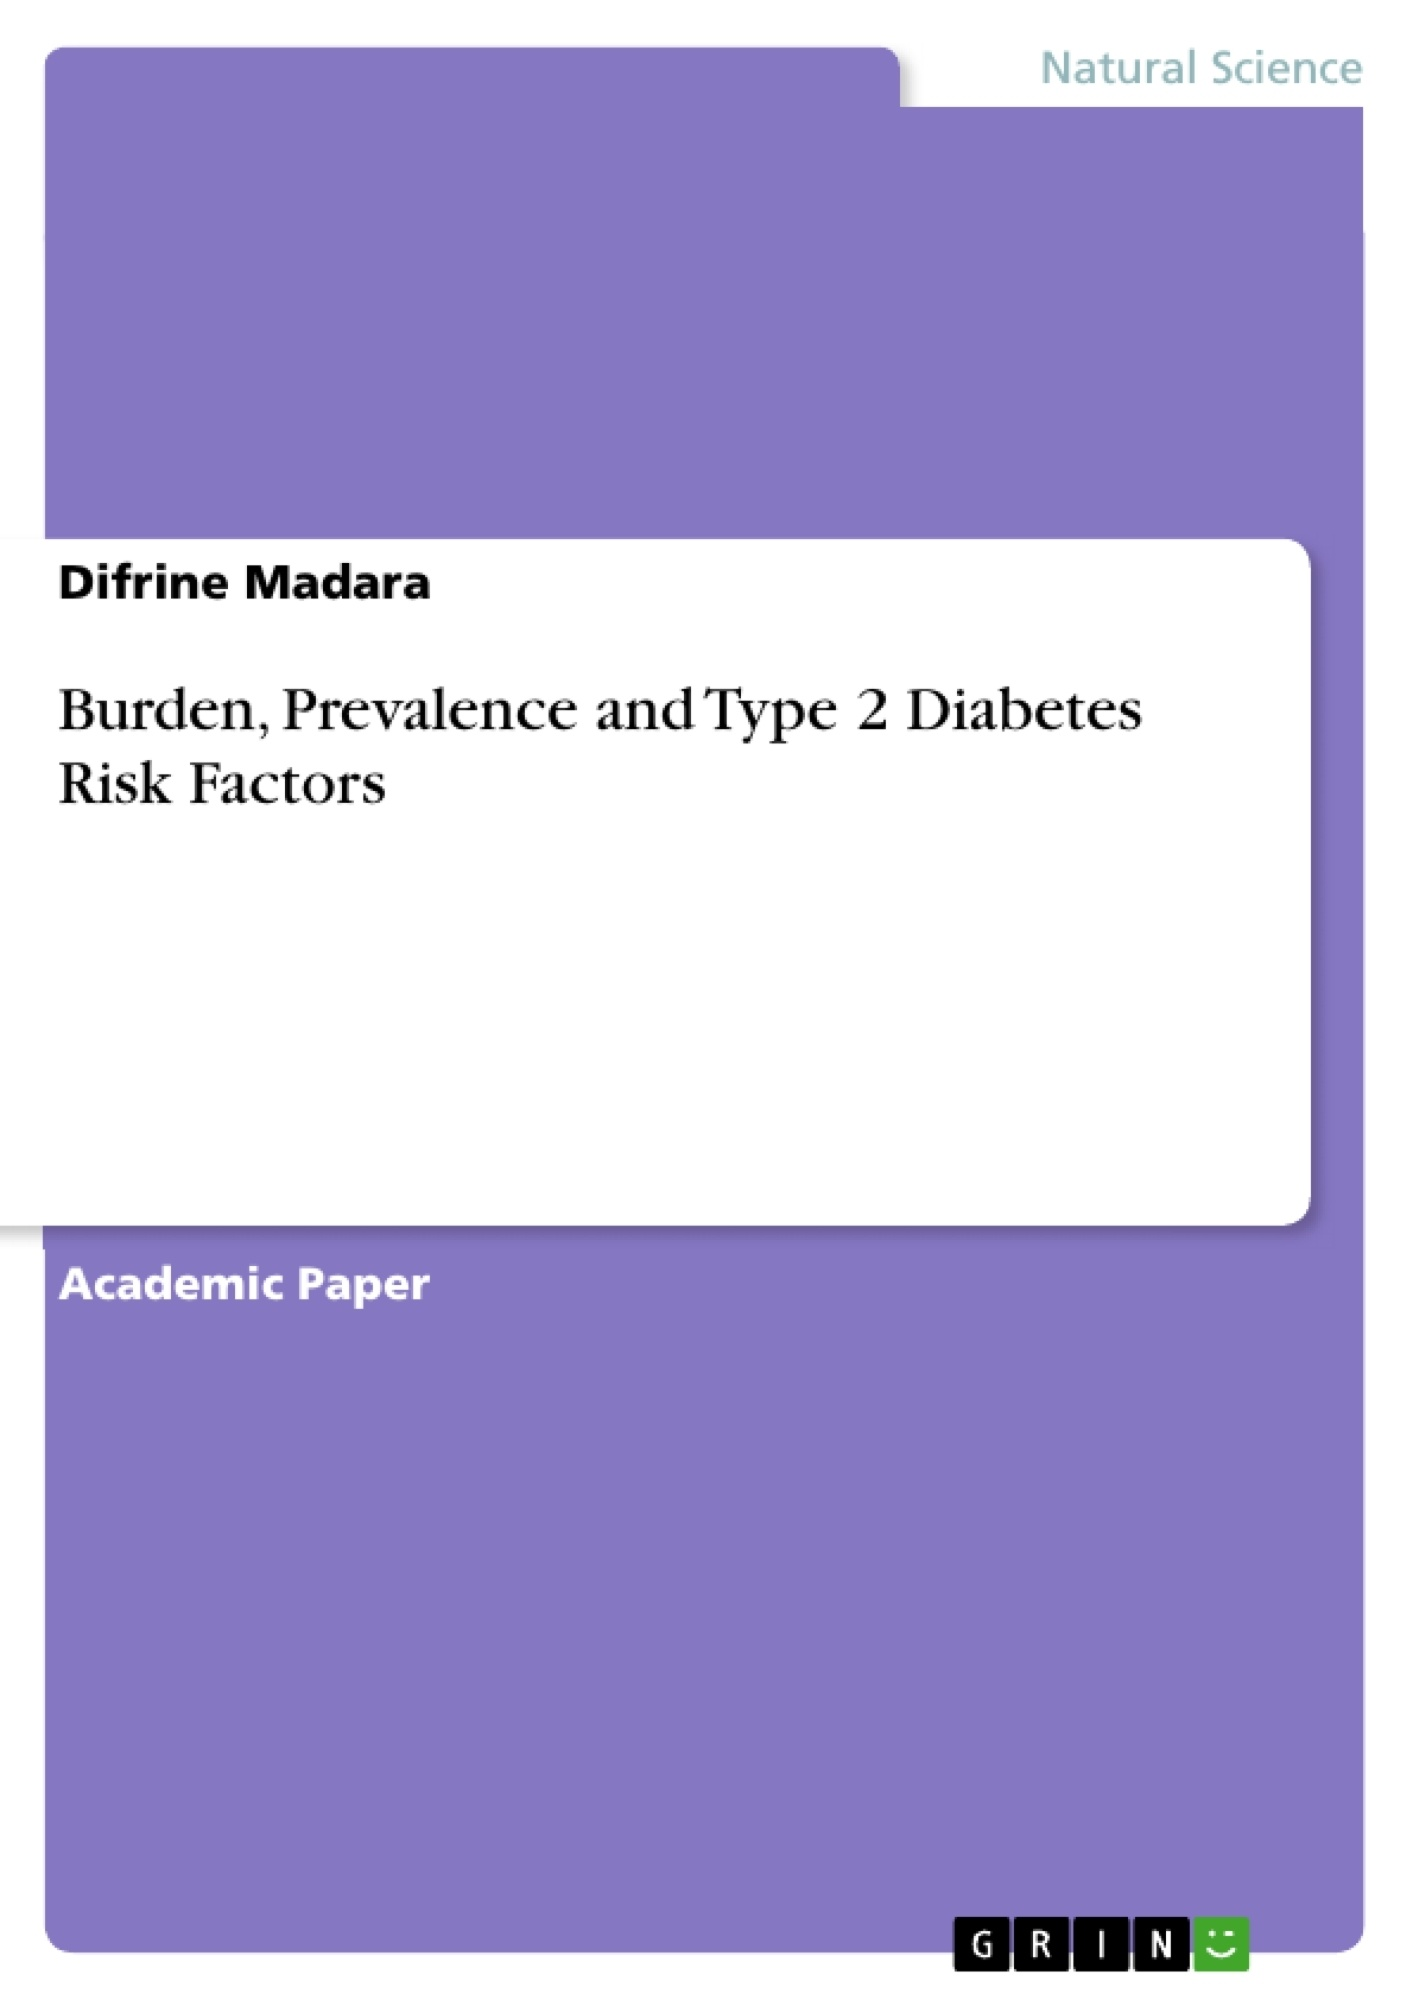 Title: Burden, Prevalence and Type 2 Diabetes Risk Factors